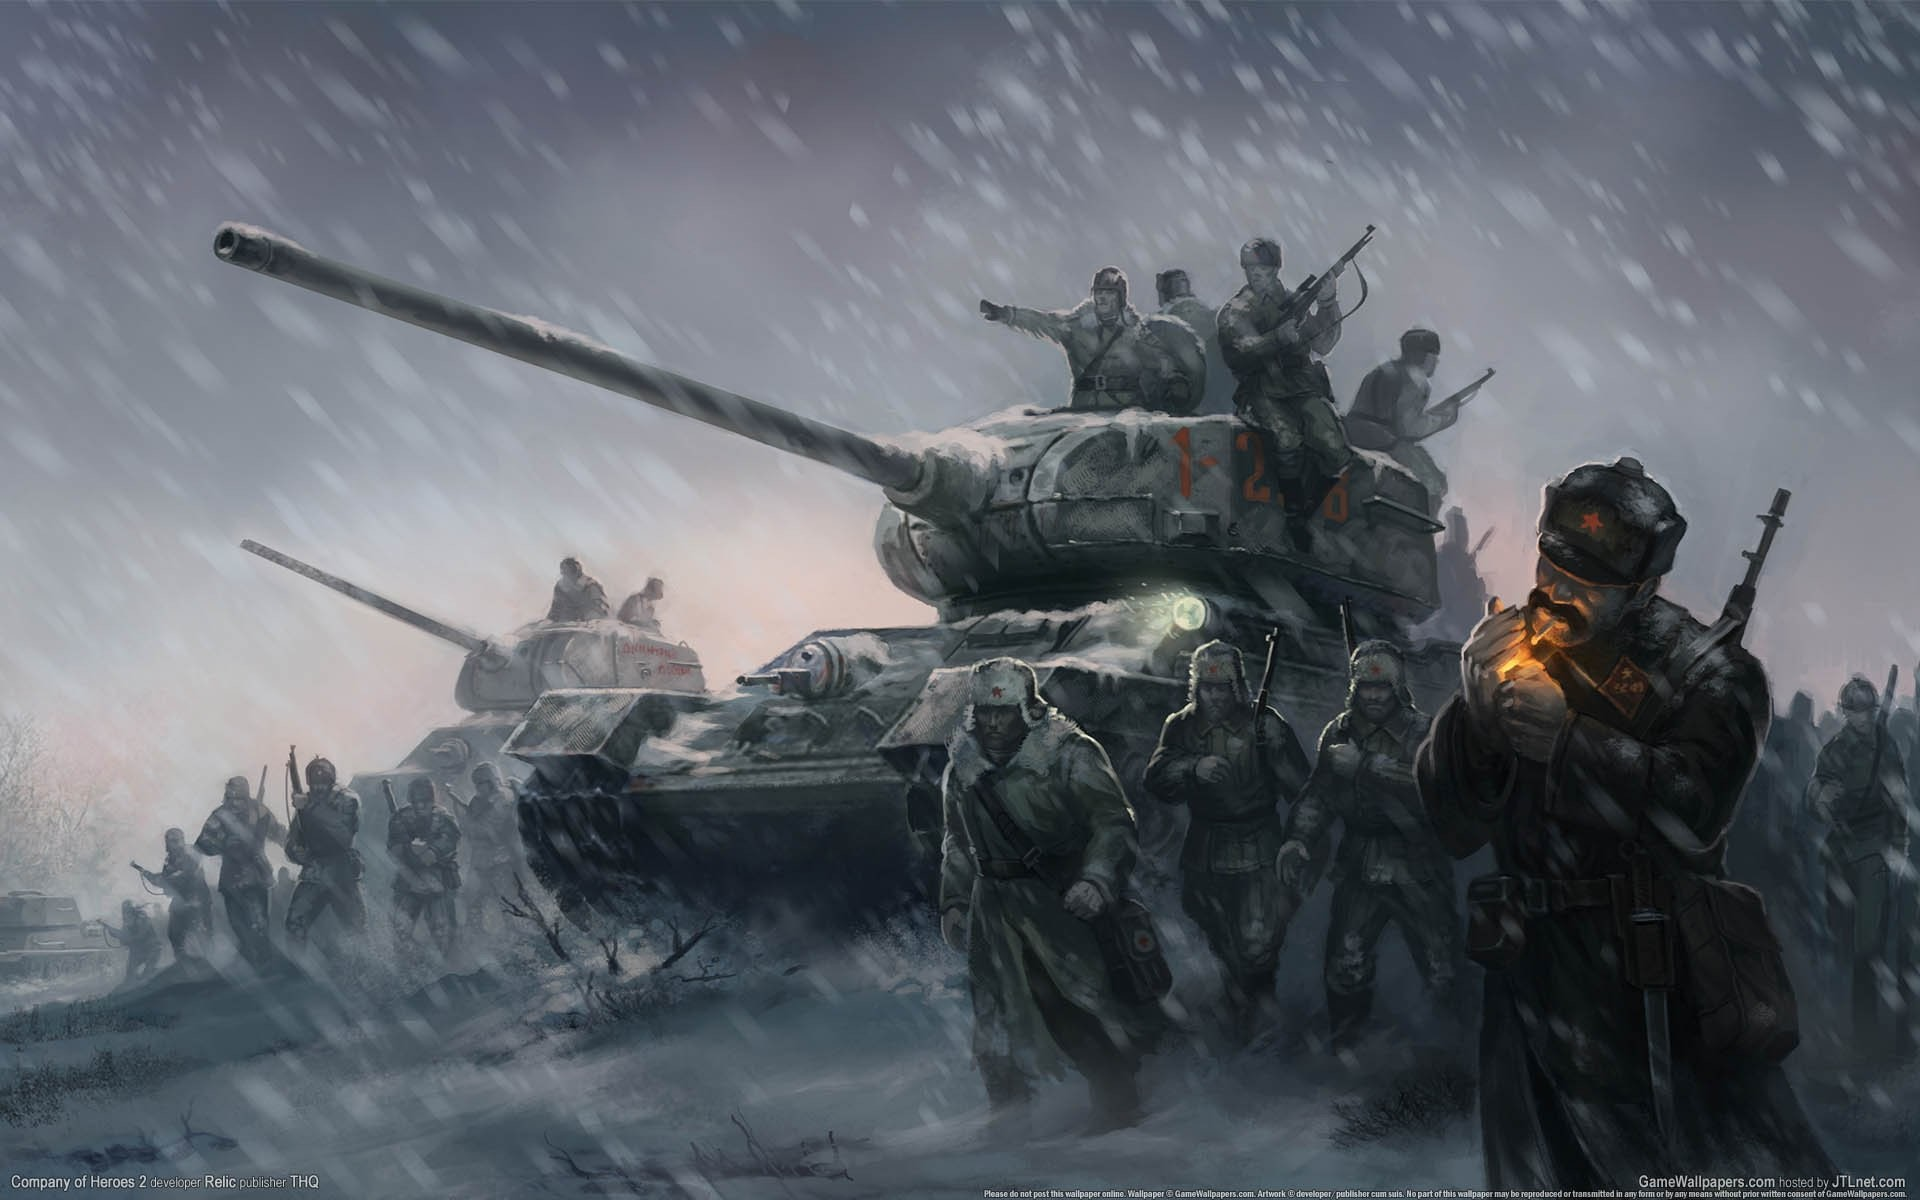 1920x1200 company of heroes 2 game wallpapers world war 2 ww2 tanks soldiers wallpaper  the second world